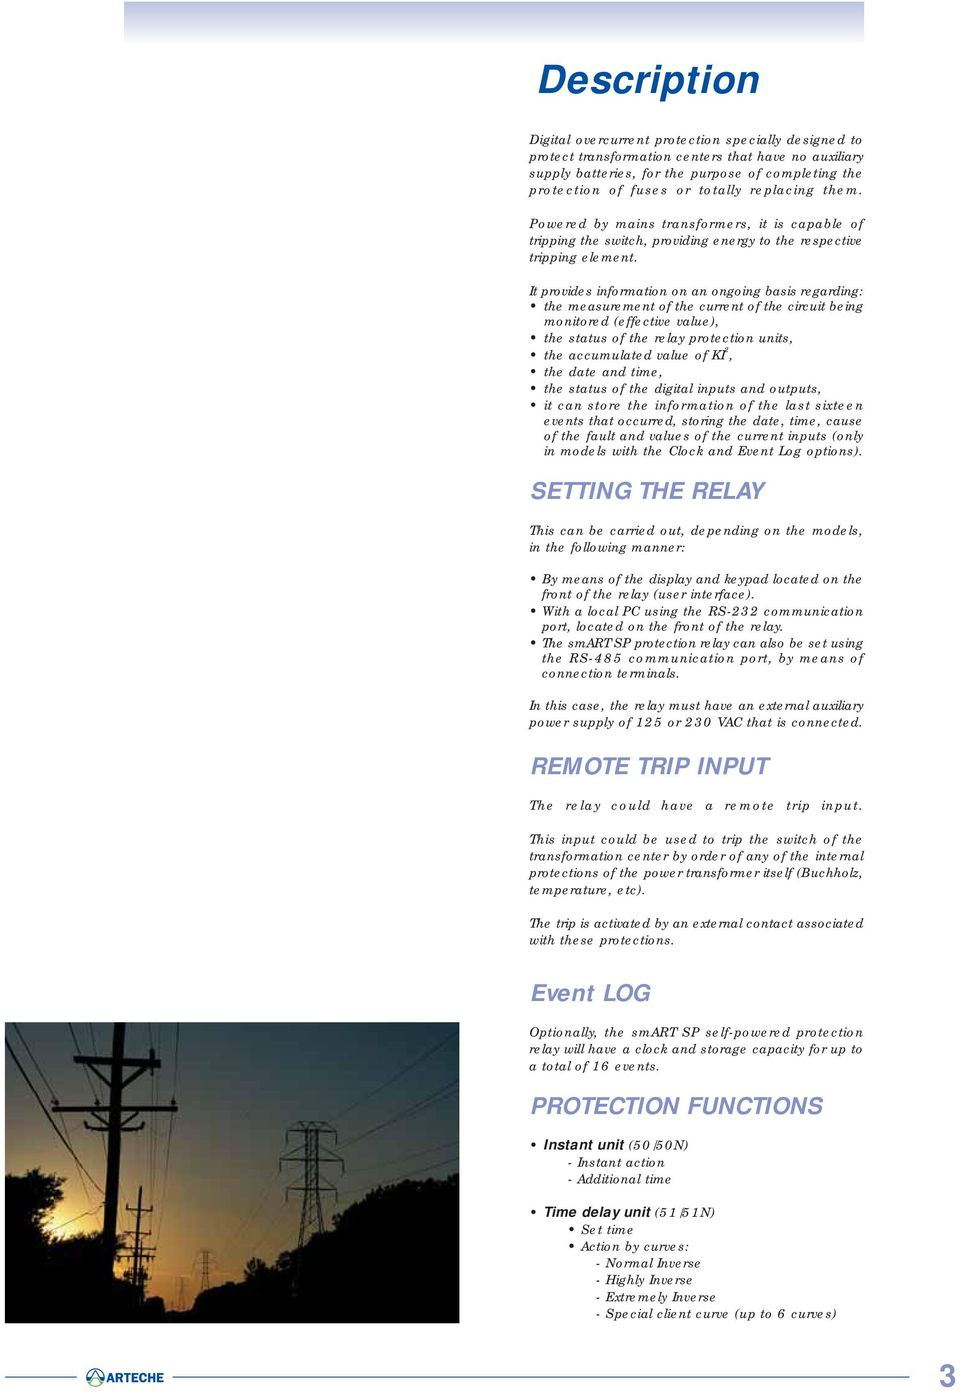 It provides information on an ongoing basis regarding: the measurement of the current of the circuit being monitored (effective value), the status of the relay protection units, the accumulated value